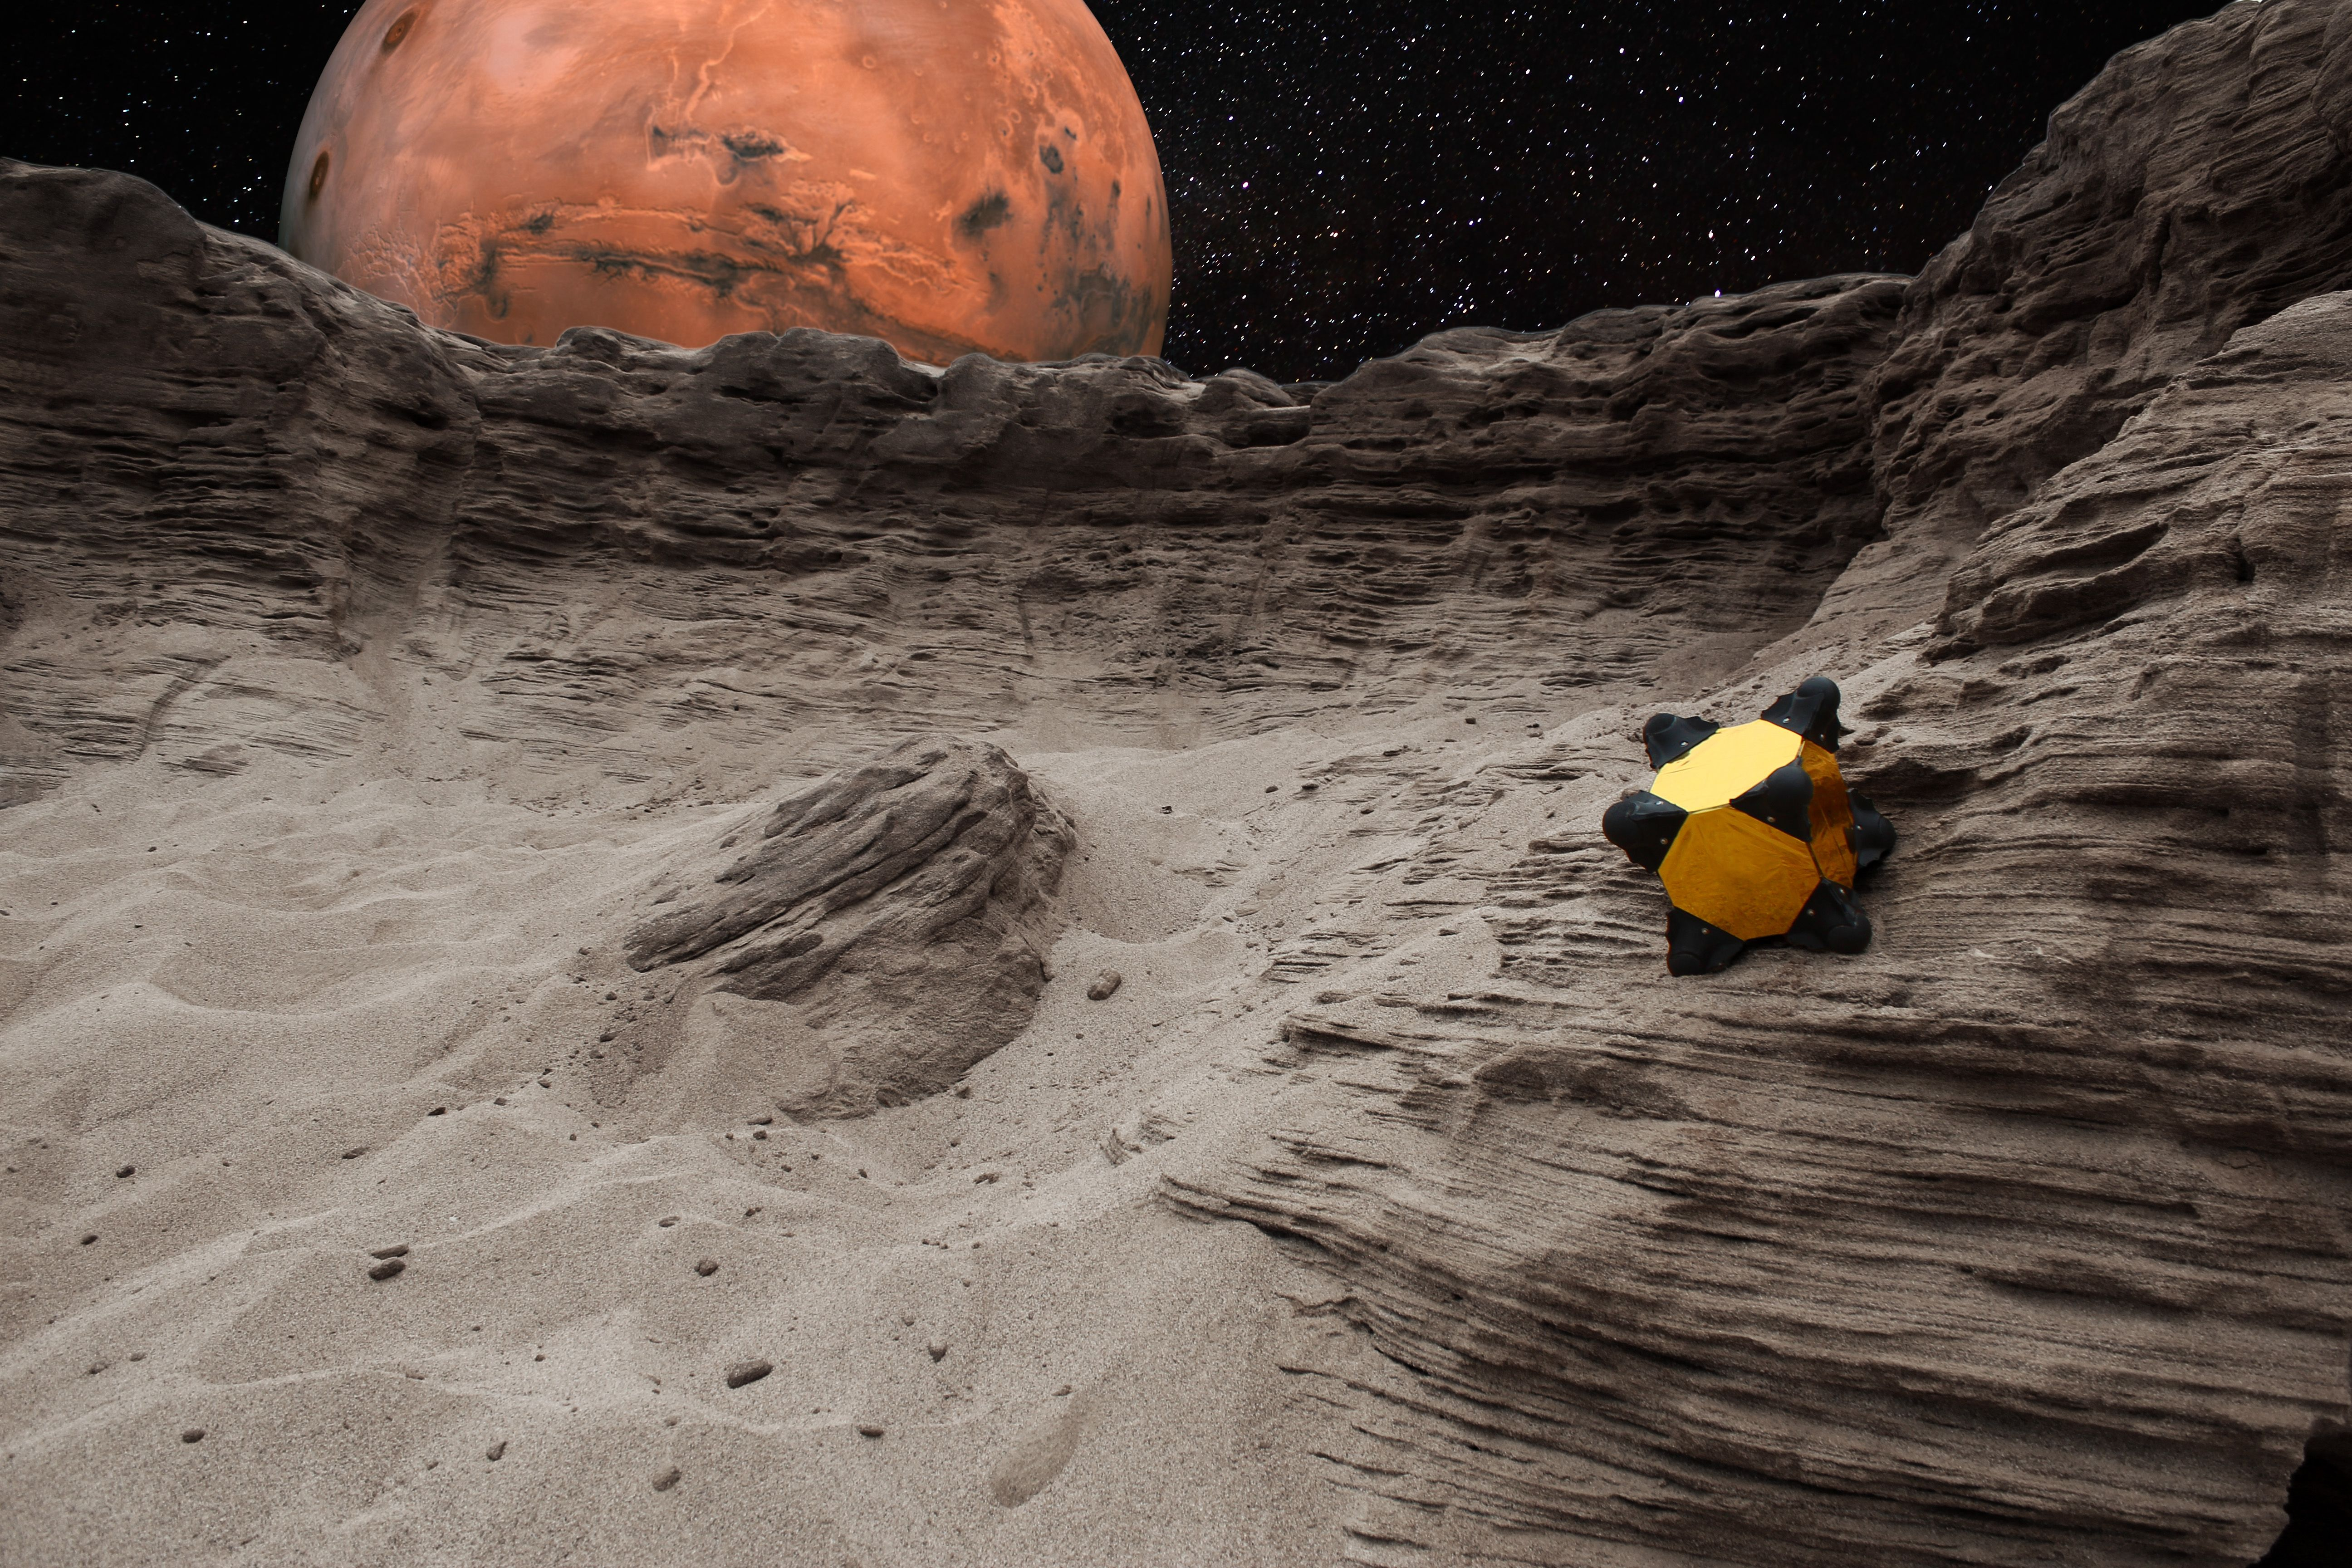 """While a Mars rover can't operate upside down, the Hedgehog robot can function regardless of which side lands up.  """"Hedgehog is a different kind of robot that would hop and tumble on the surface instead of rolling on wheels. It is shaped like a cube and can operate no matter which side it lands on,"""" said Issa Nesnas, leader of the JPL team."""